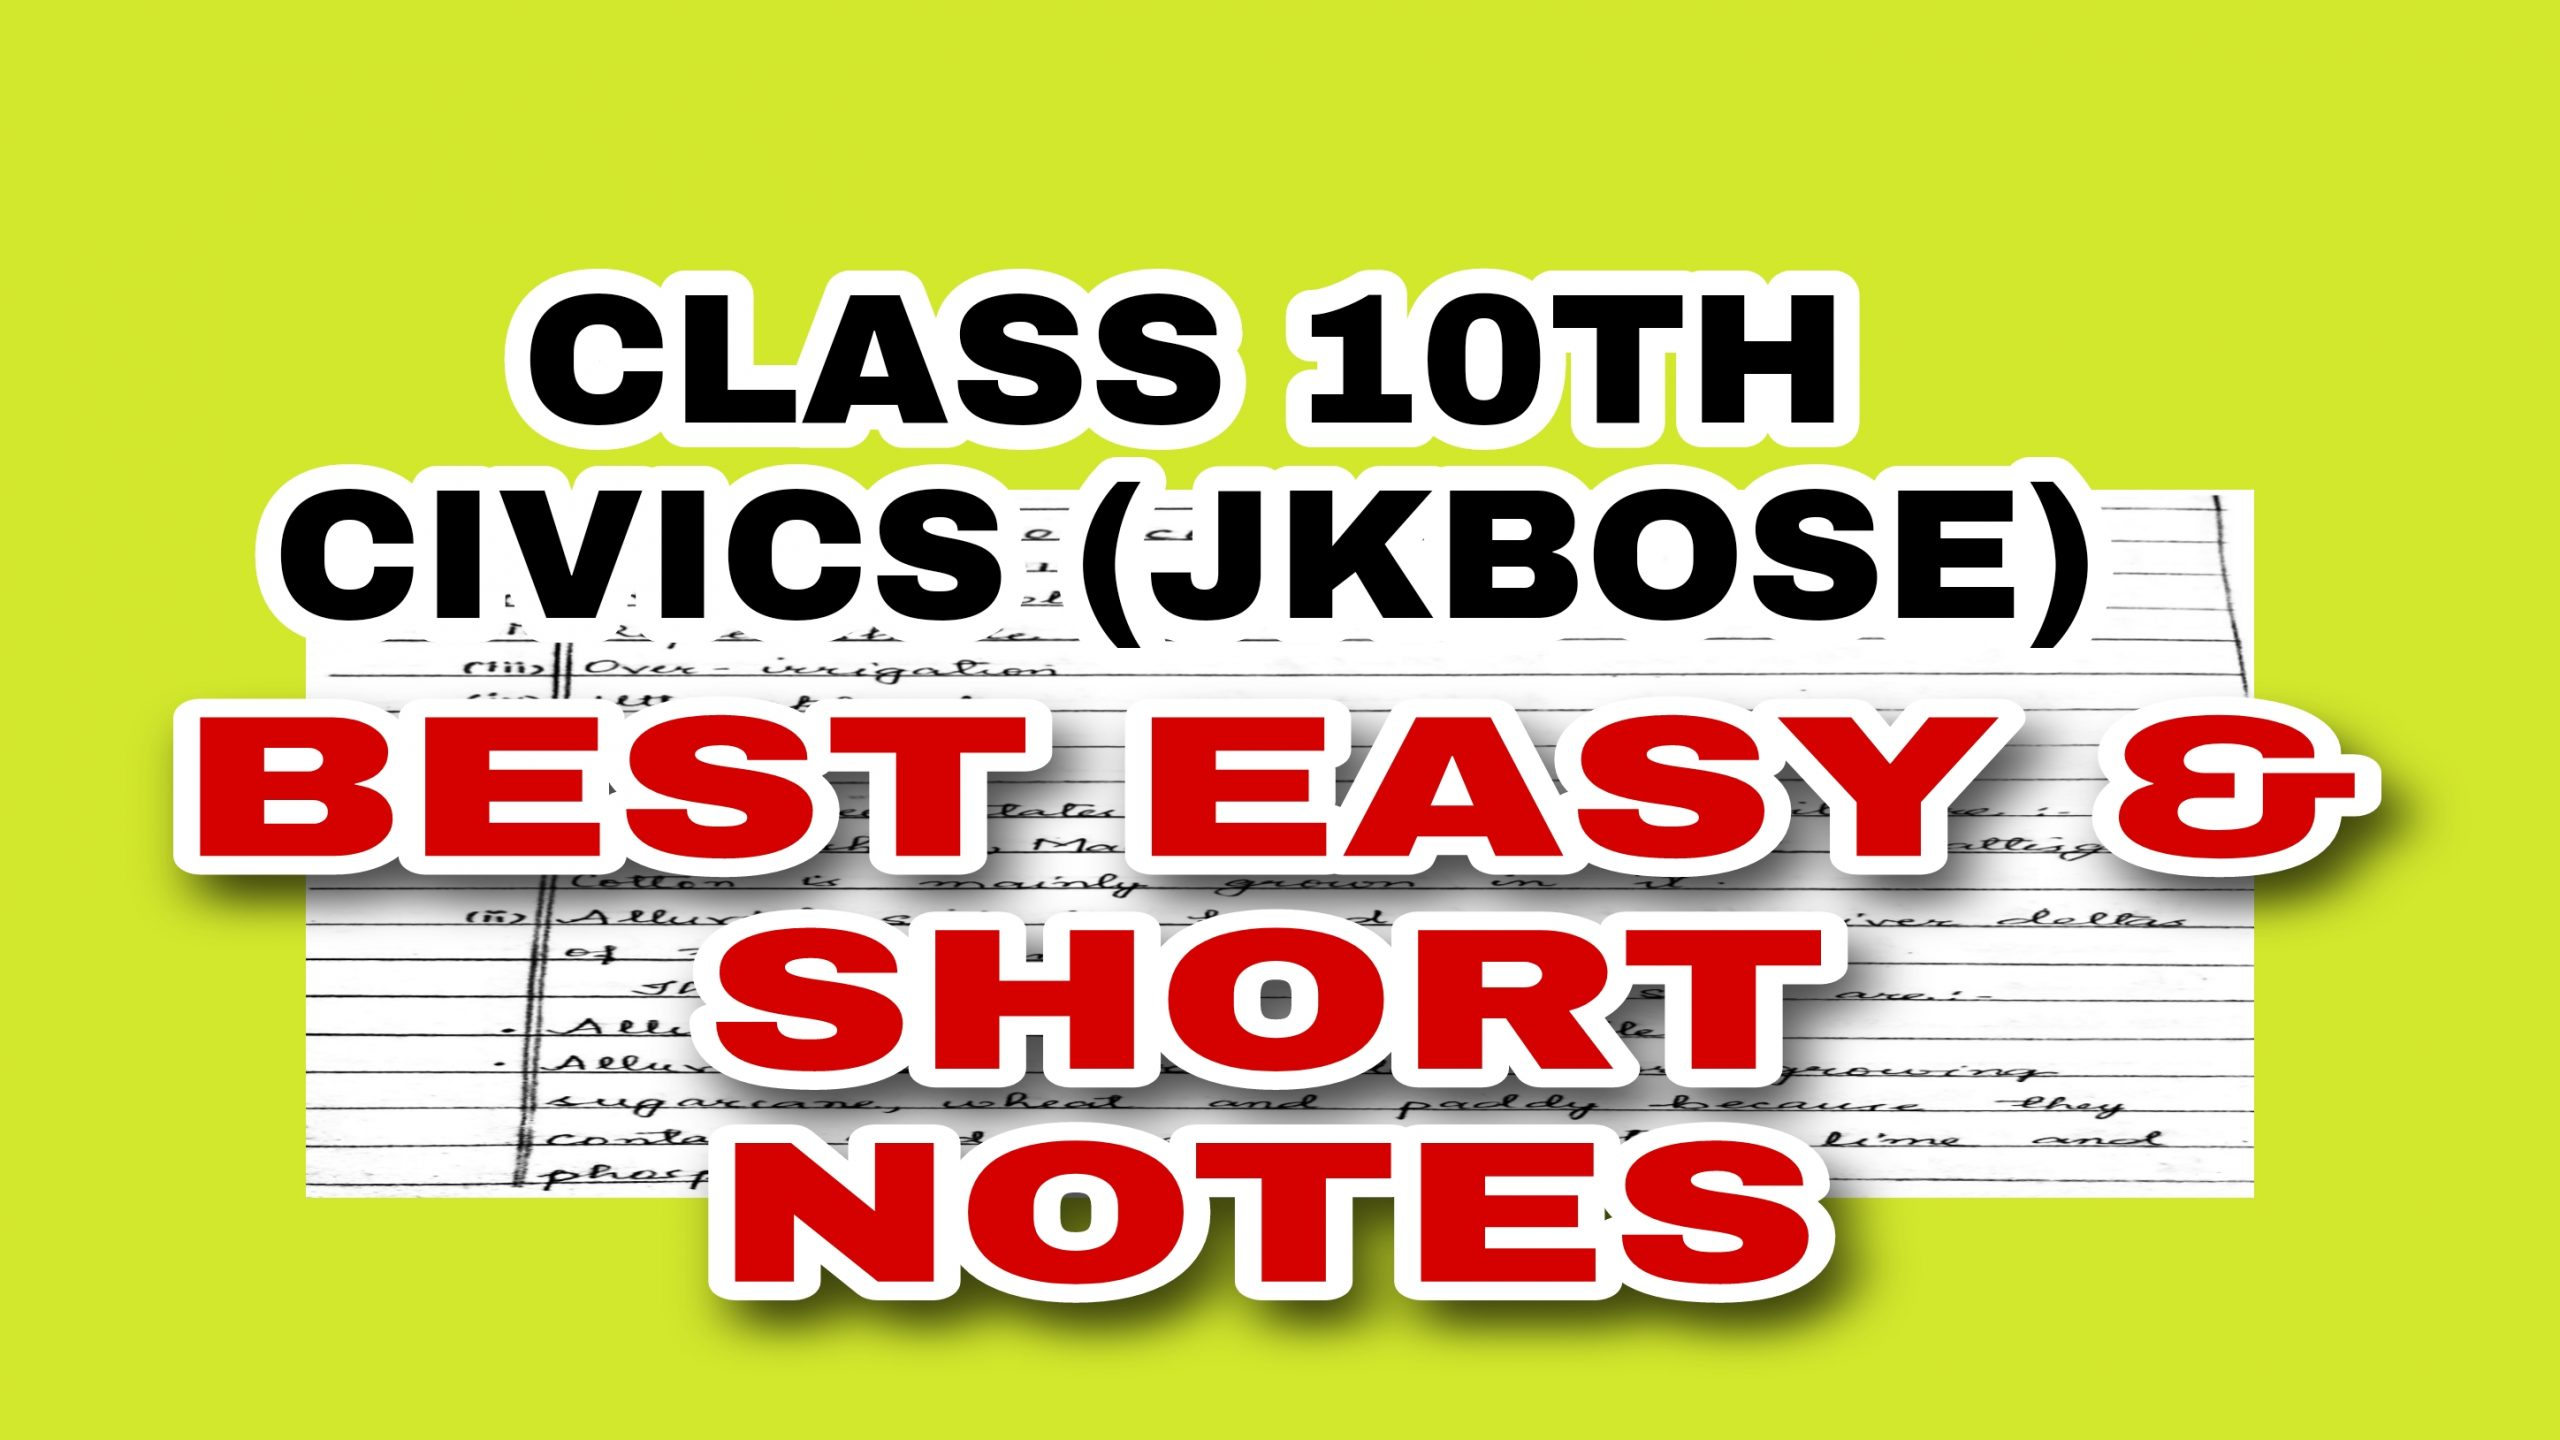 JKBOSE Civics Notes Pdf Download Political science Class 10th Best notes